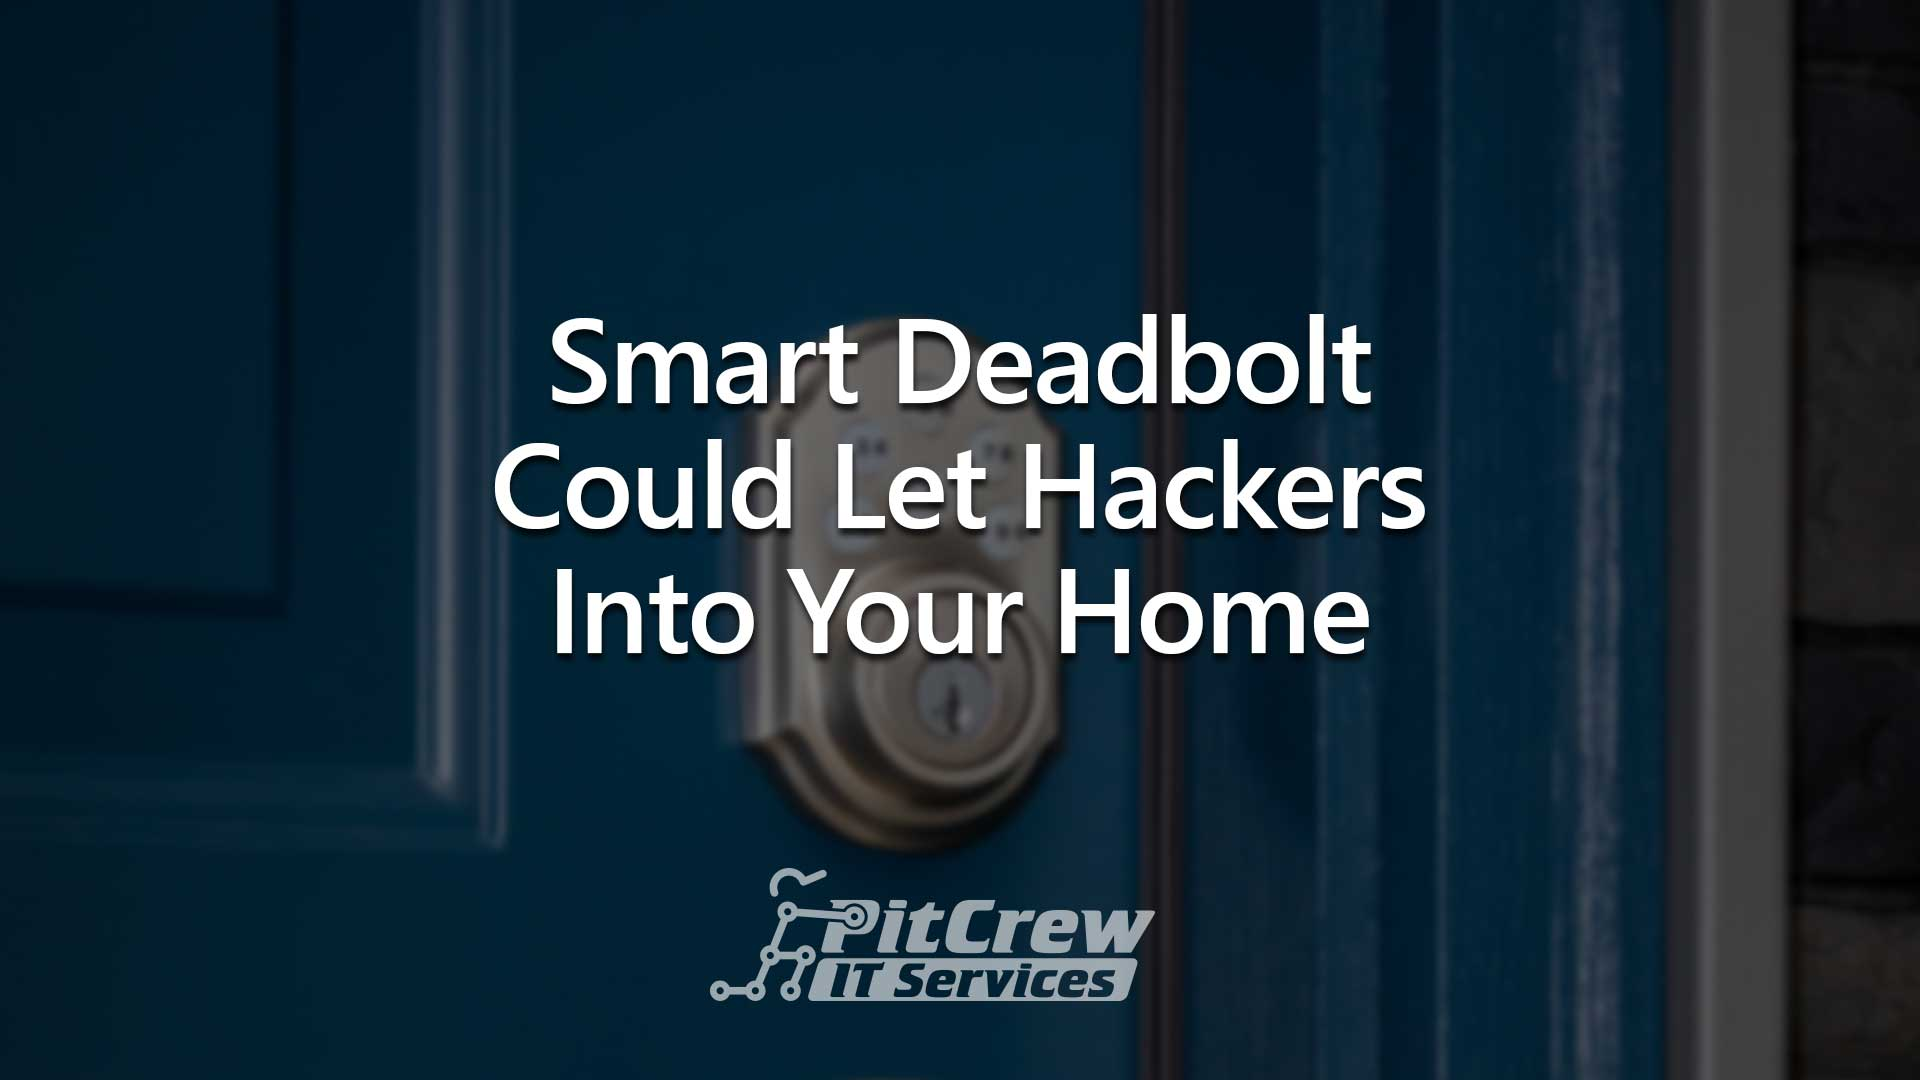 Smart Deadbolt Could Let Hackers Into Your Home